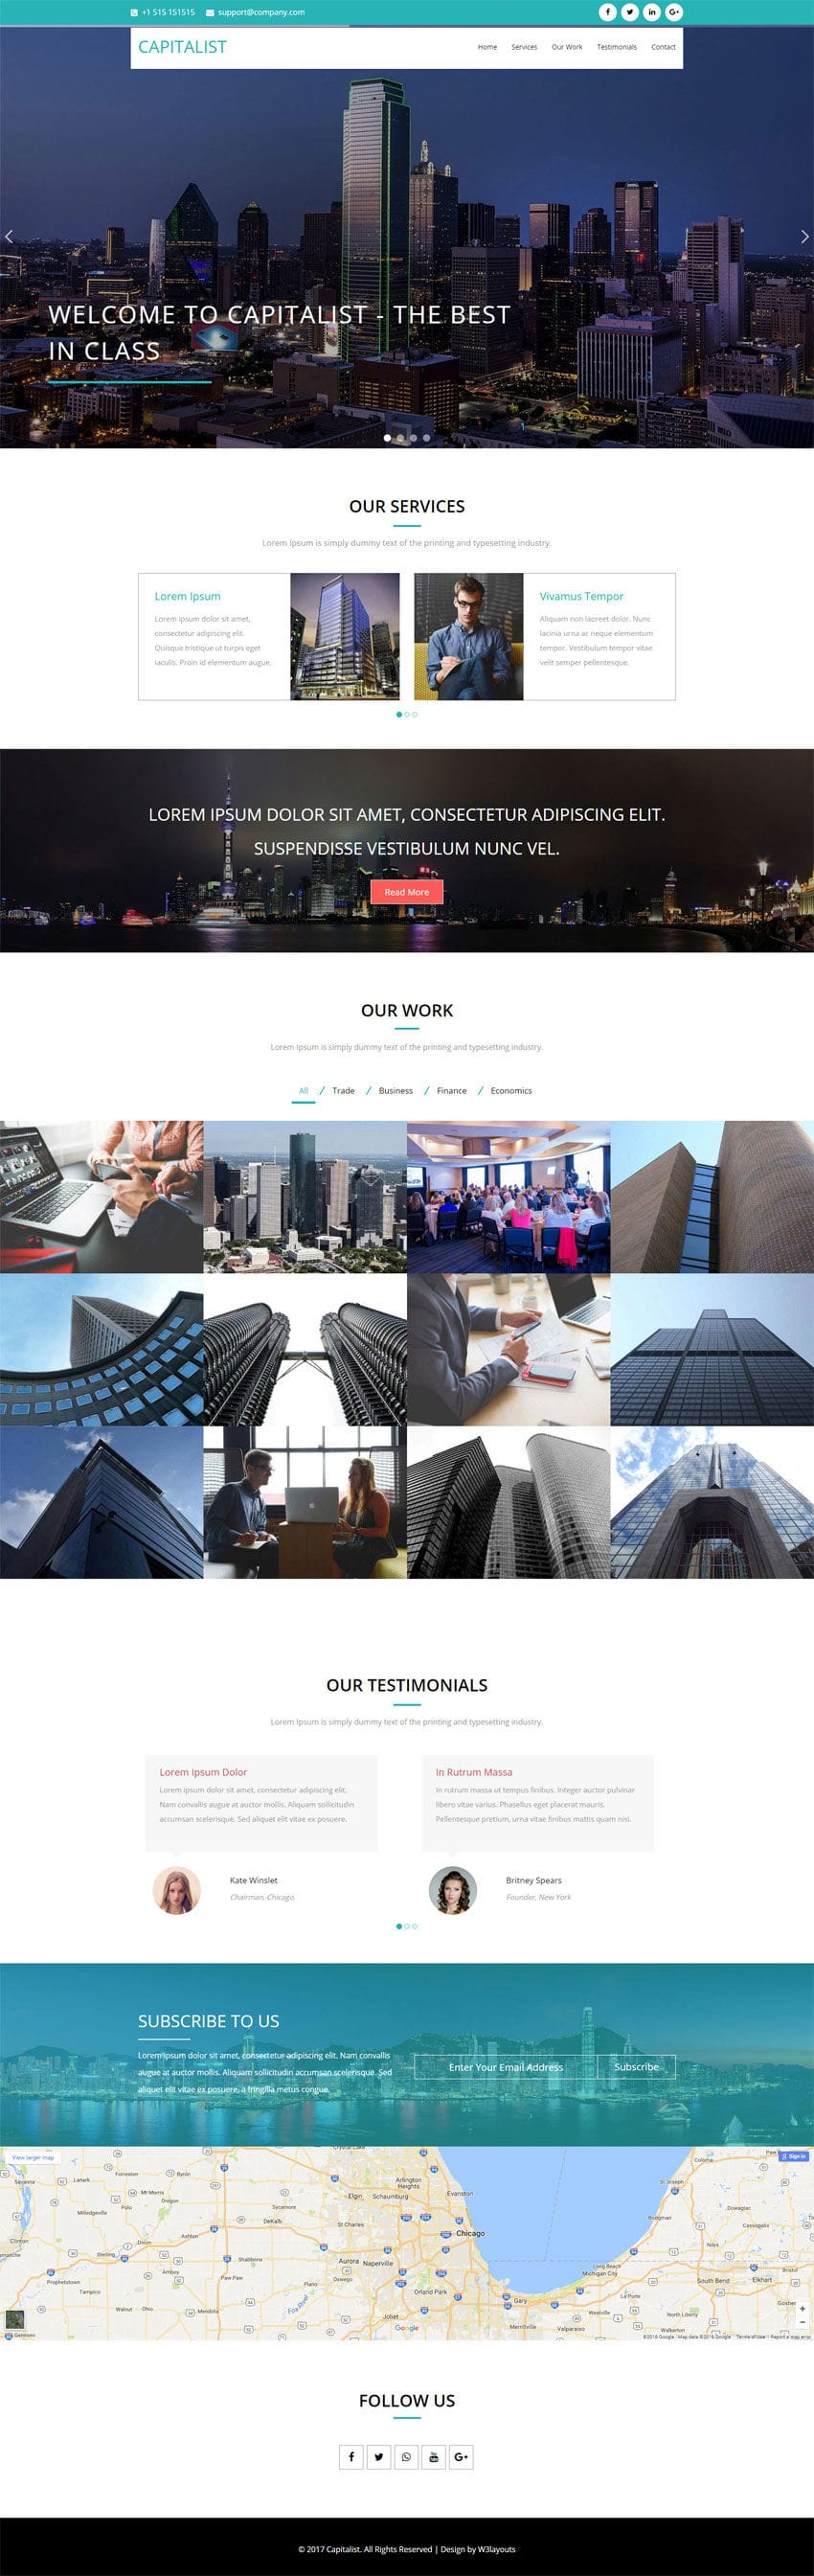 Capitalist a Corporate Category Flat Bootstrap Responsive